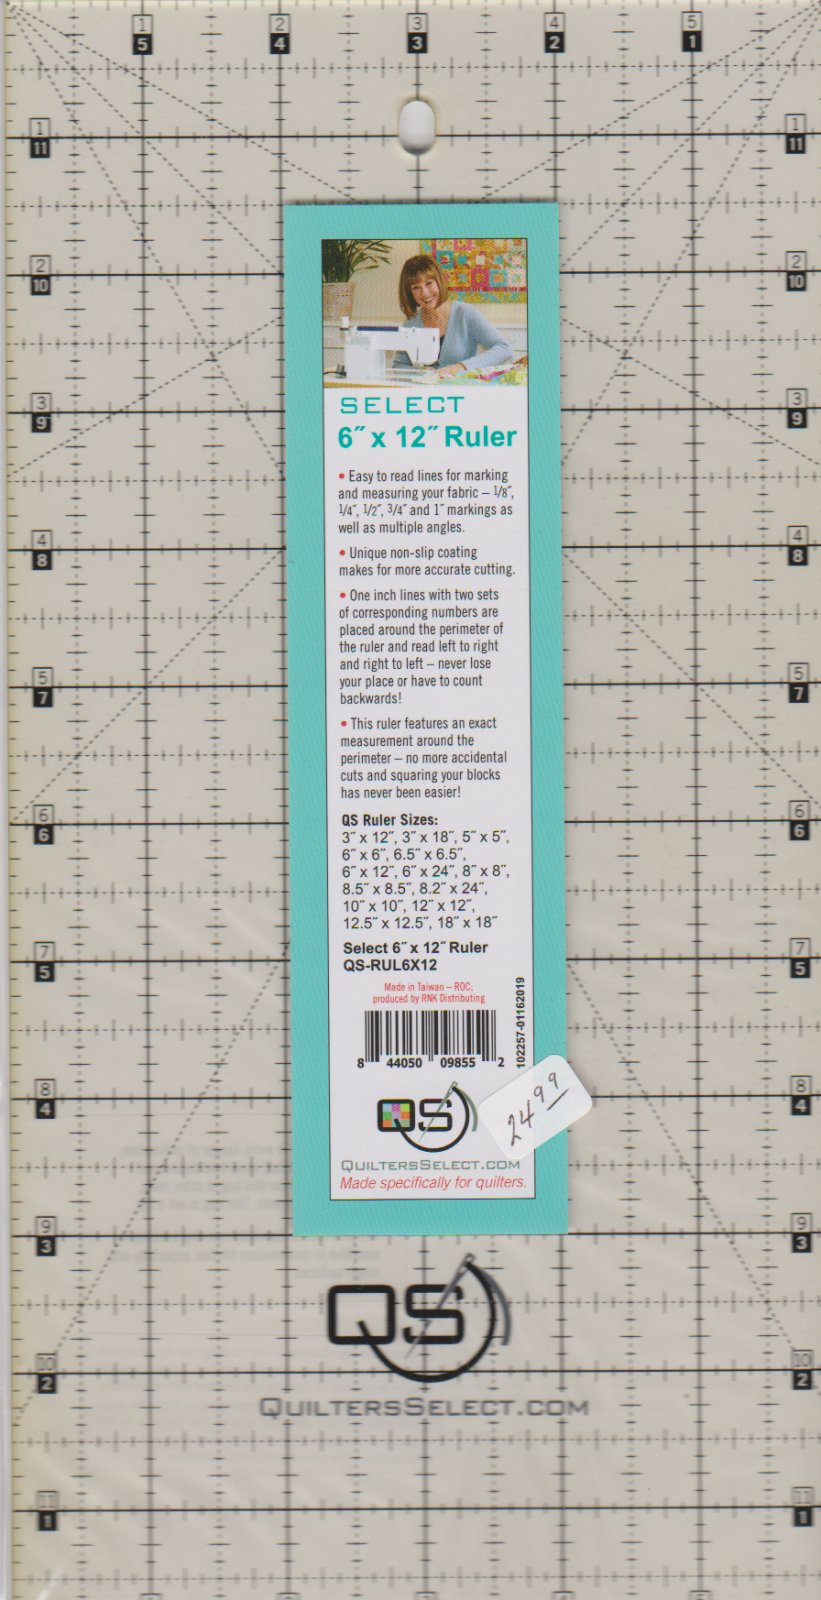 Quilters Select ruler, 6 x 12